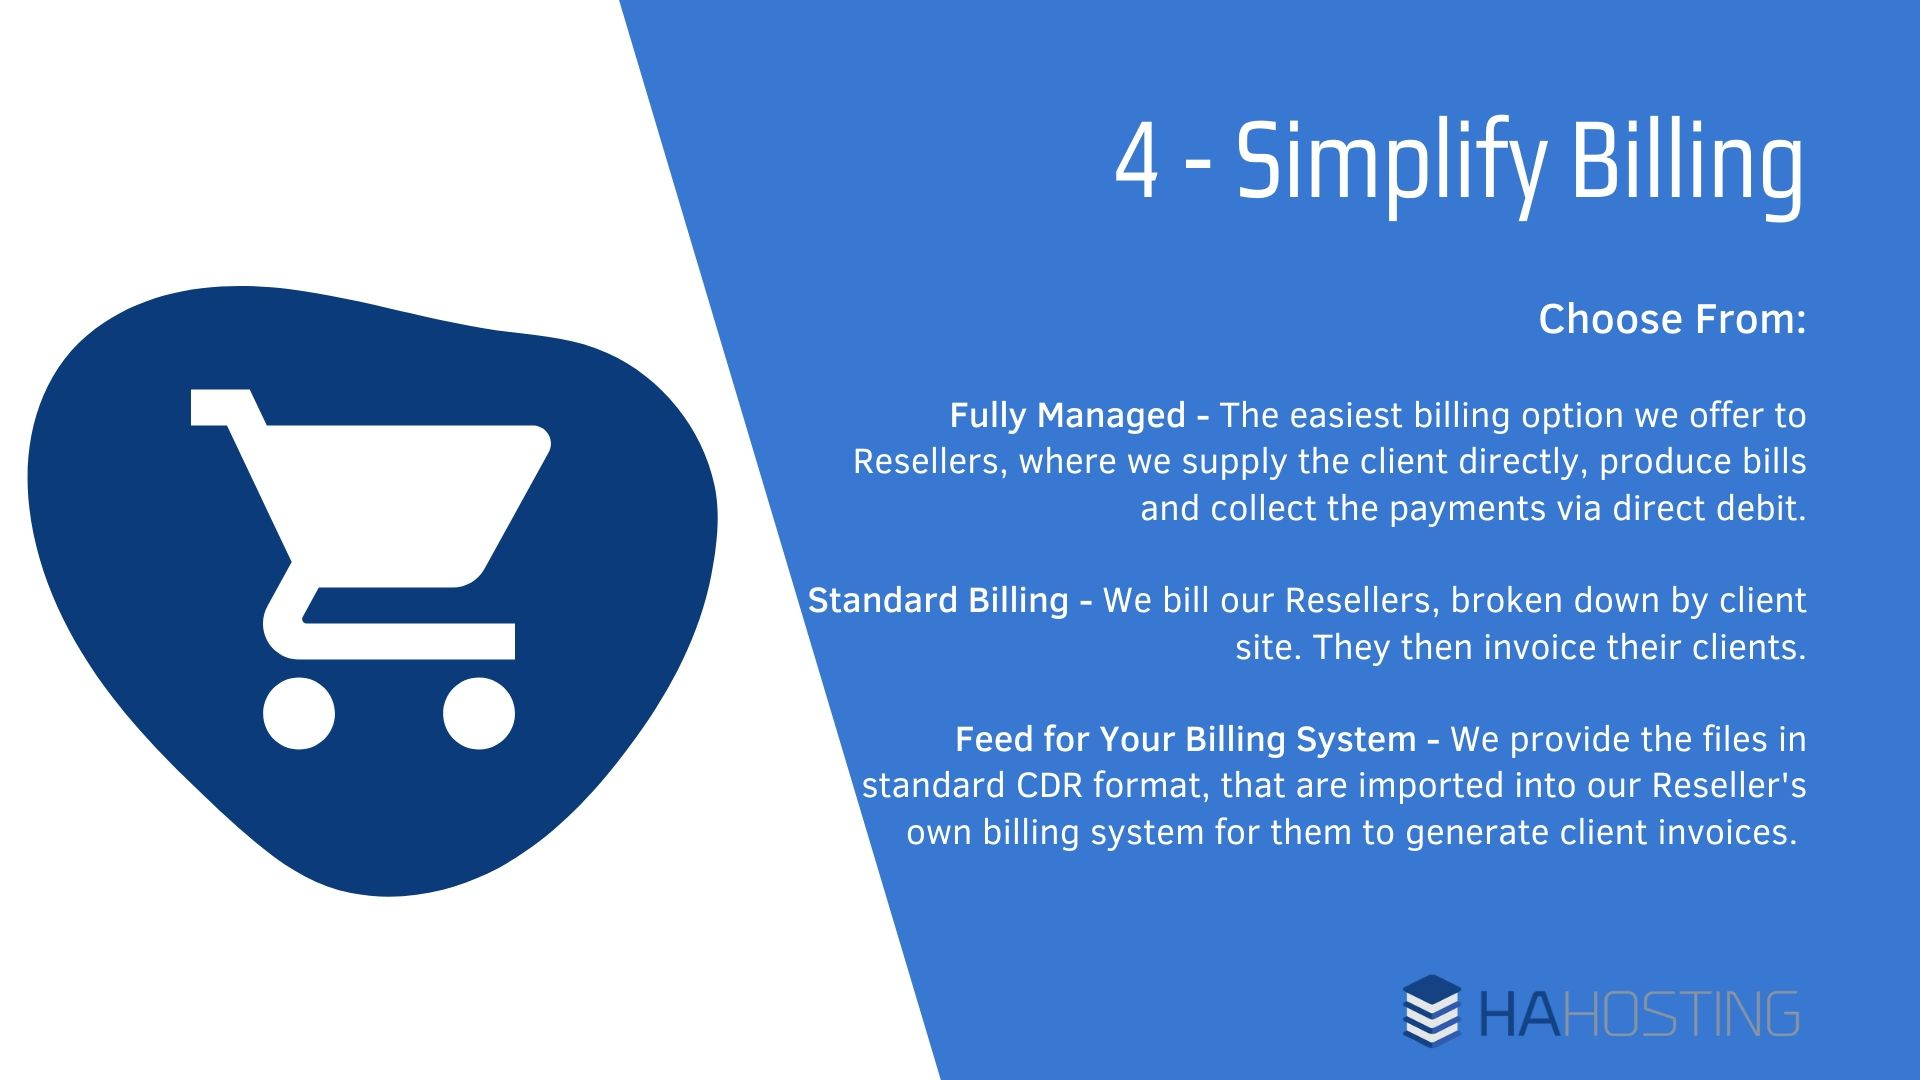 Simplifying billing - Fully Managed - The easiest billing option we offer to Resellers, where we supply the client directly, produce bills and collect the payments via direct debit. Standard Billing - We bill our Resellers, broken down by client site. They then invoice their clients. Feed for Your Billing System - We provide the files in standard CDR format, that are imported into our Reseller's own billing system for them to generate client invoices.